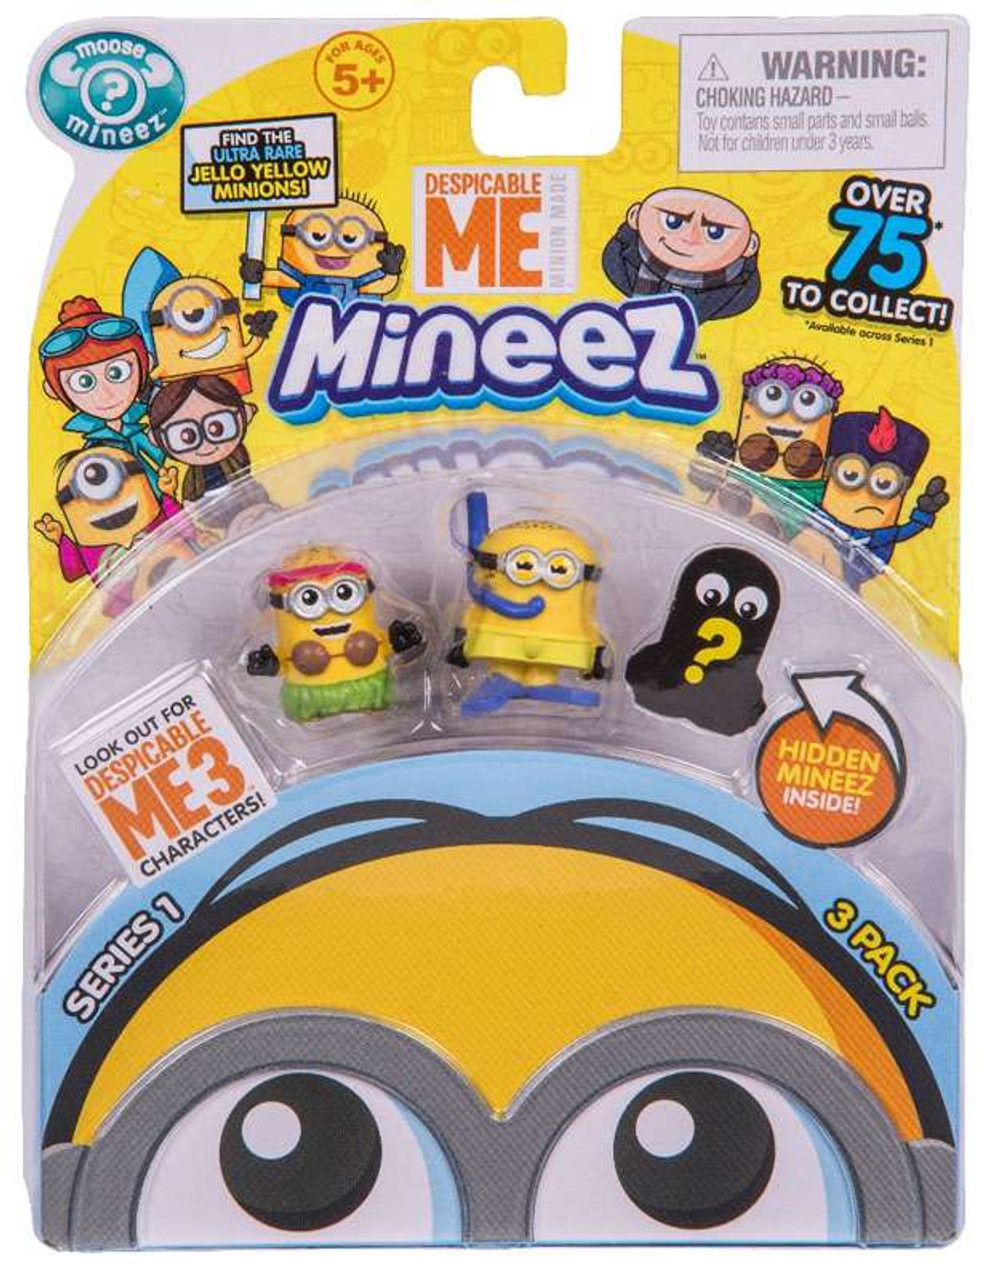 5 x Mineez Series 1 Despicable Me Surprise Pack Blind Box Collectible Kids Toy Baby